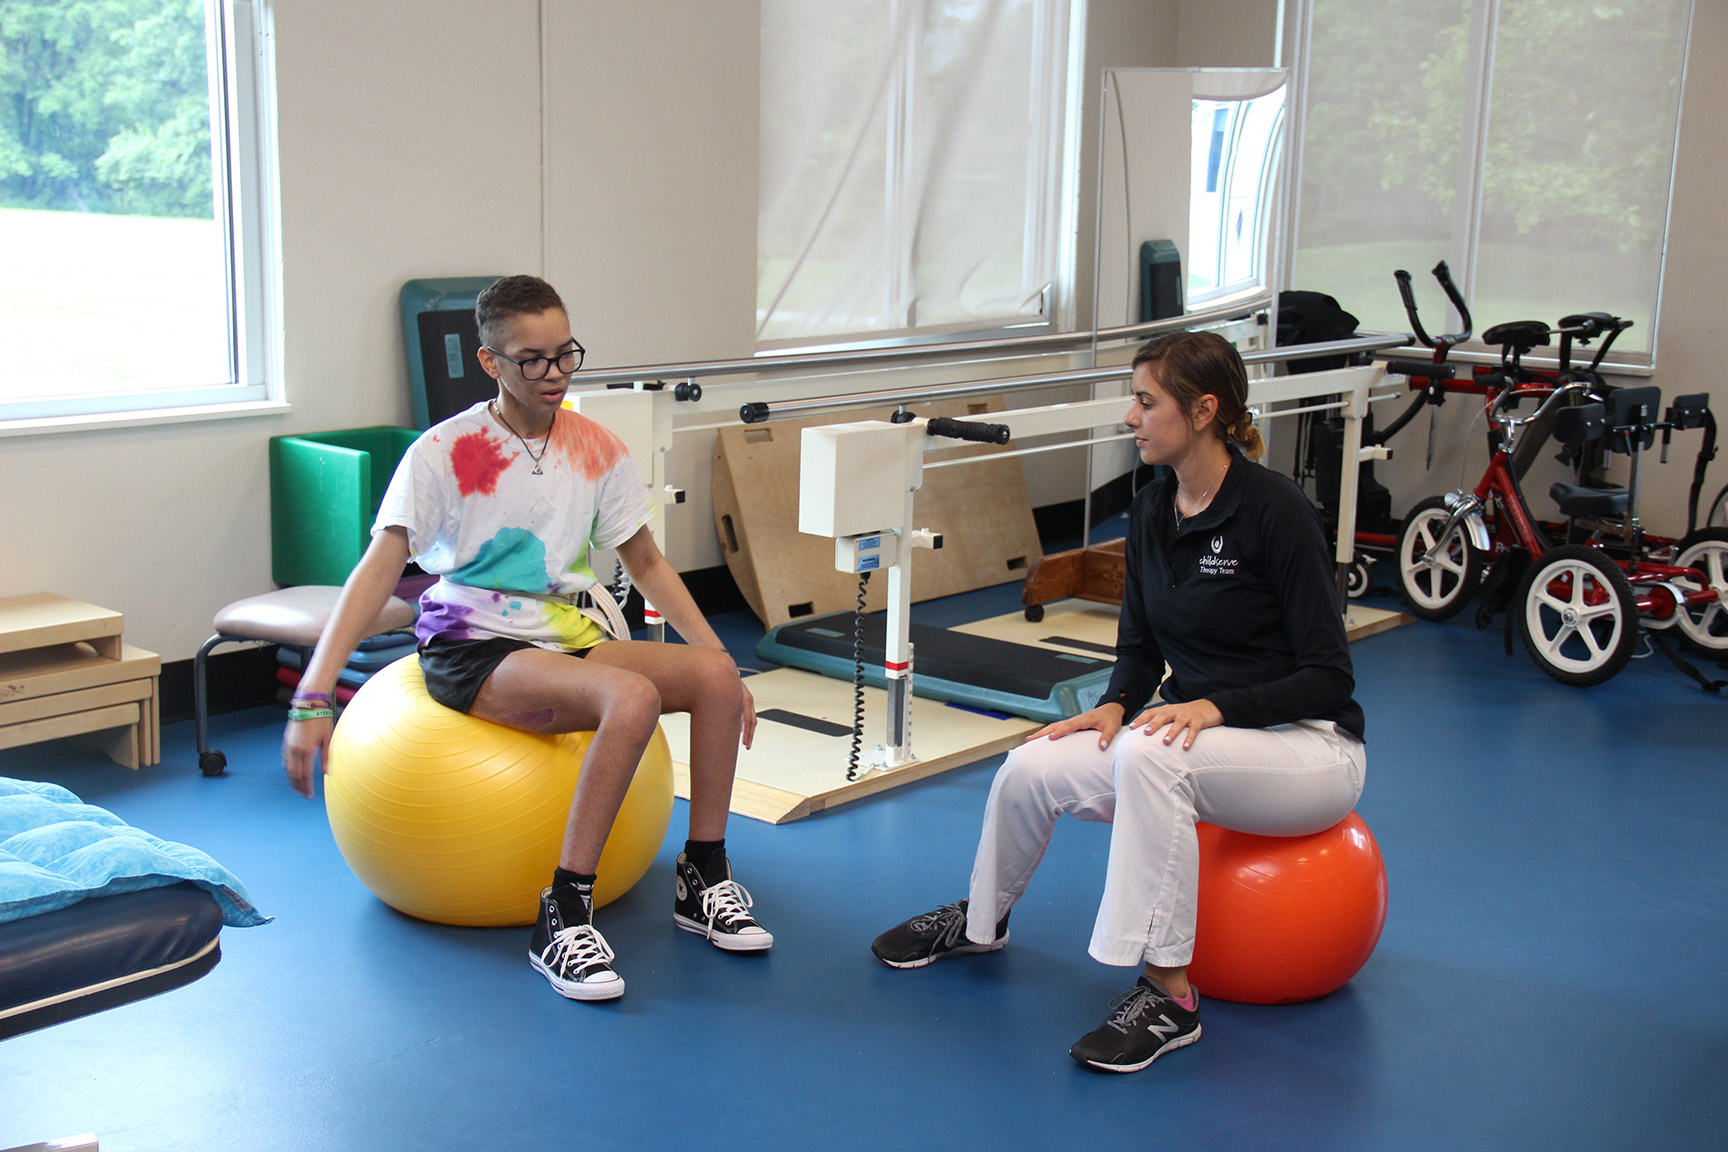 Sarah in therapy session sitting on a yellow ball.